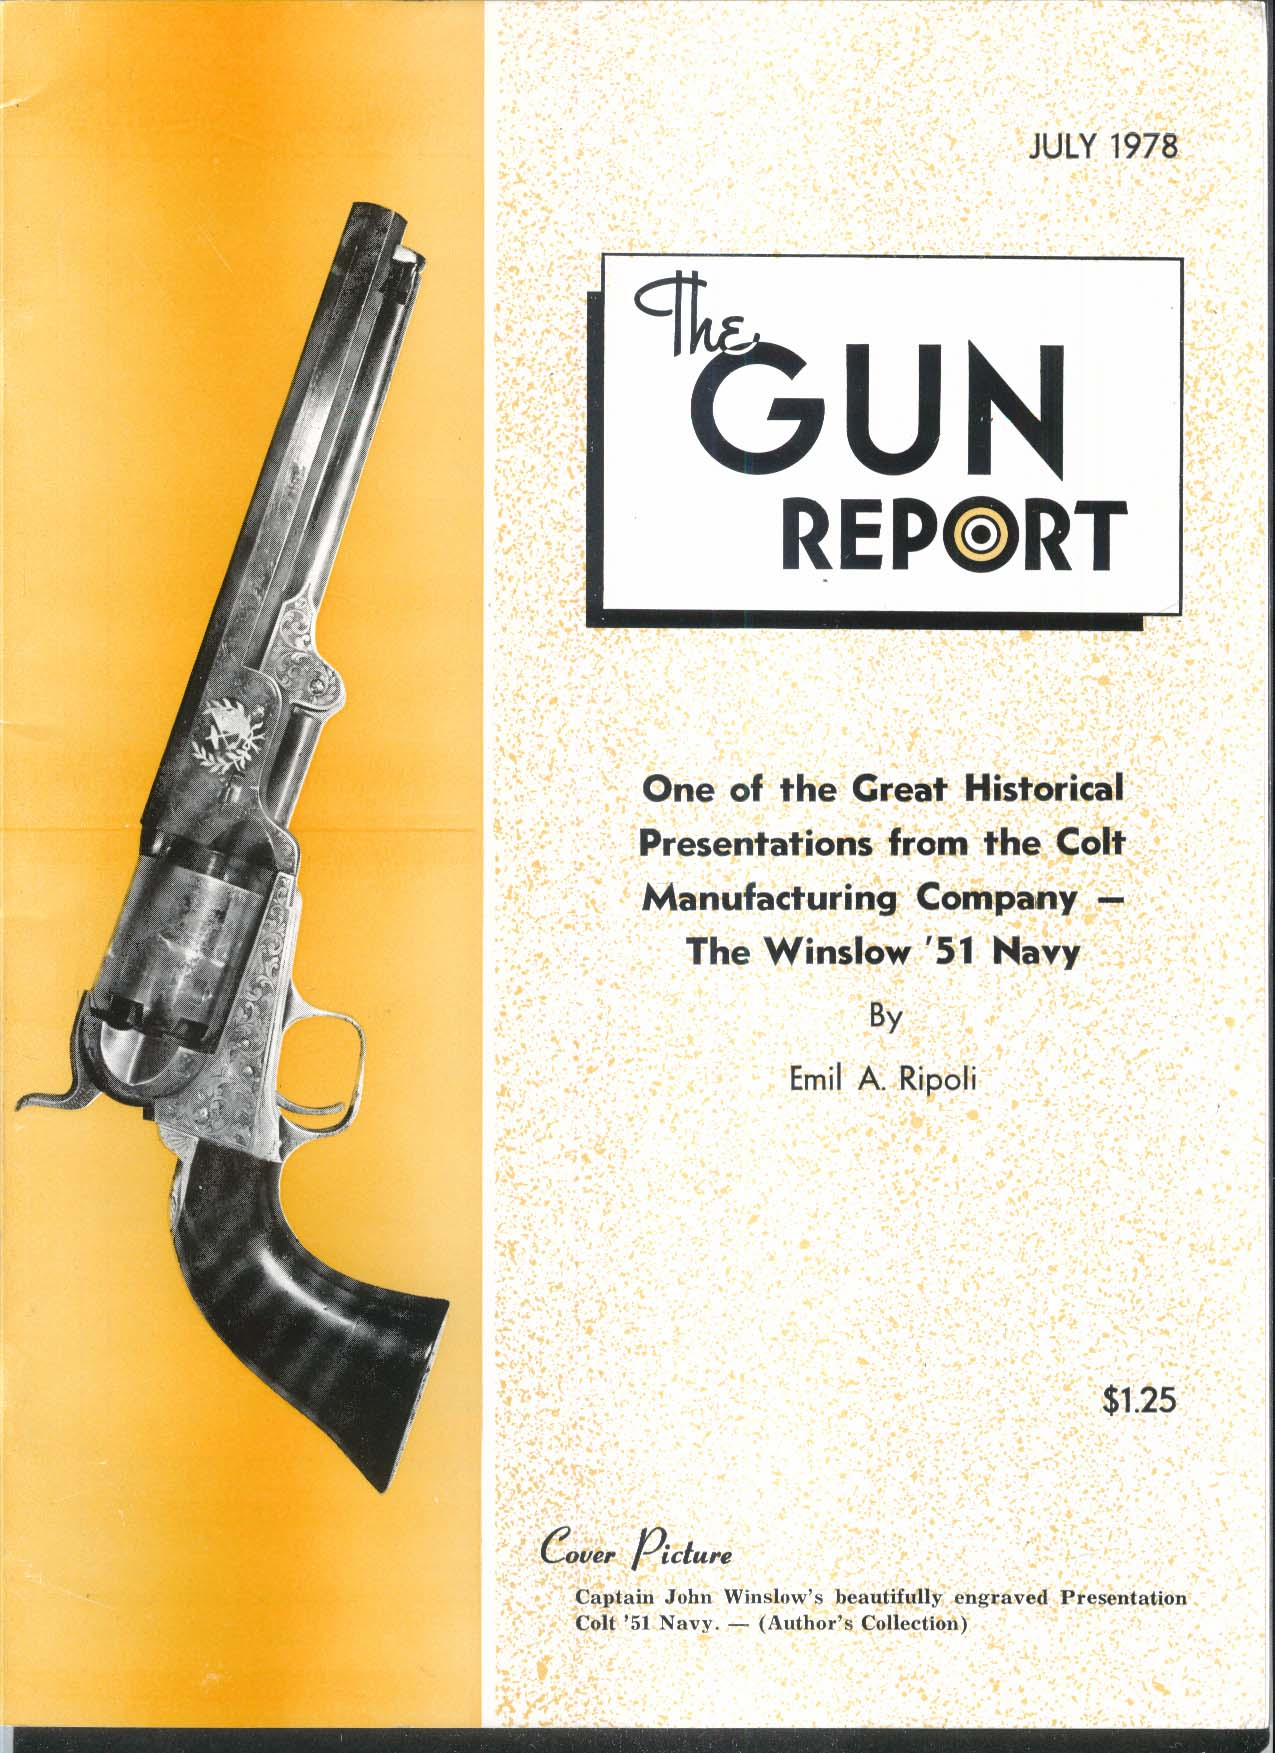 GUN REPORT Winslow 1851 Navy Colt Savage-Halpine Torpedo 7 1978